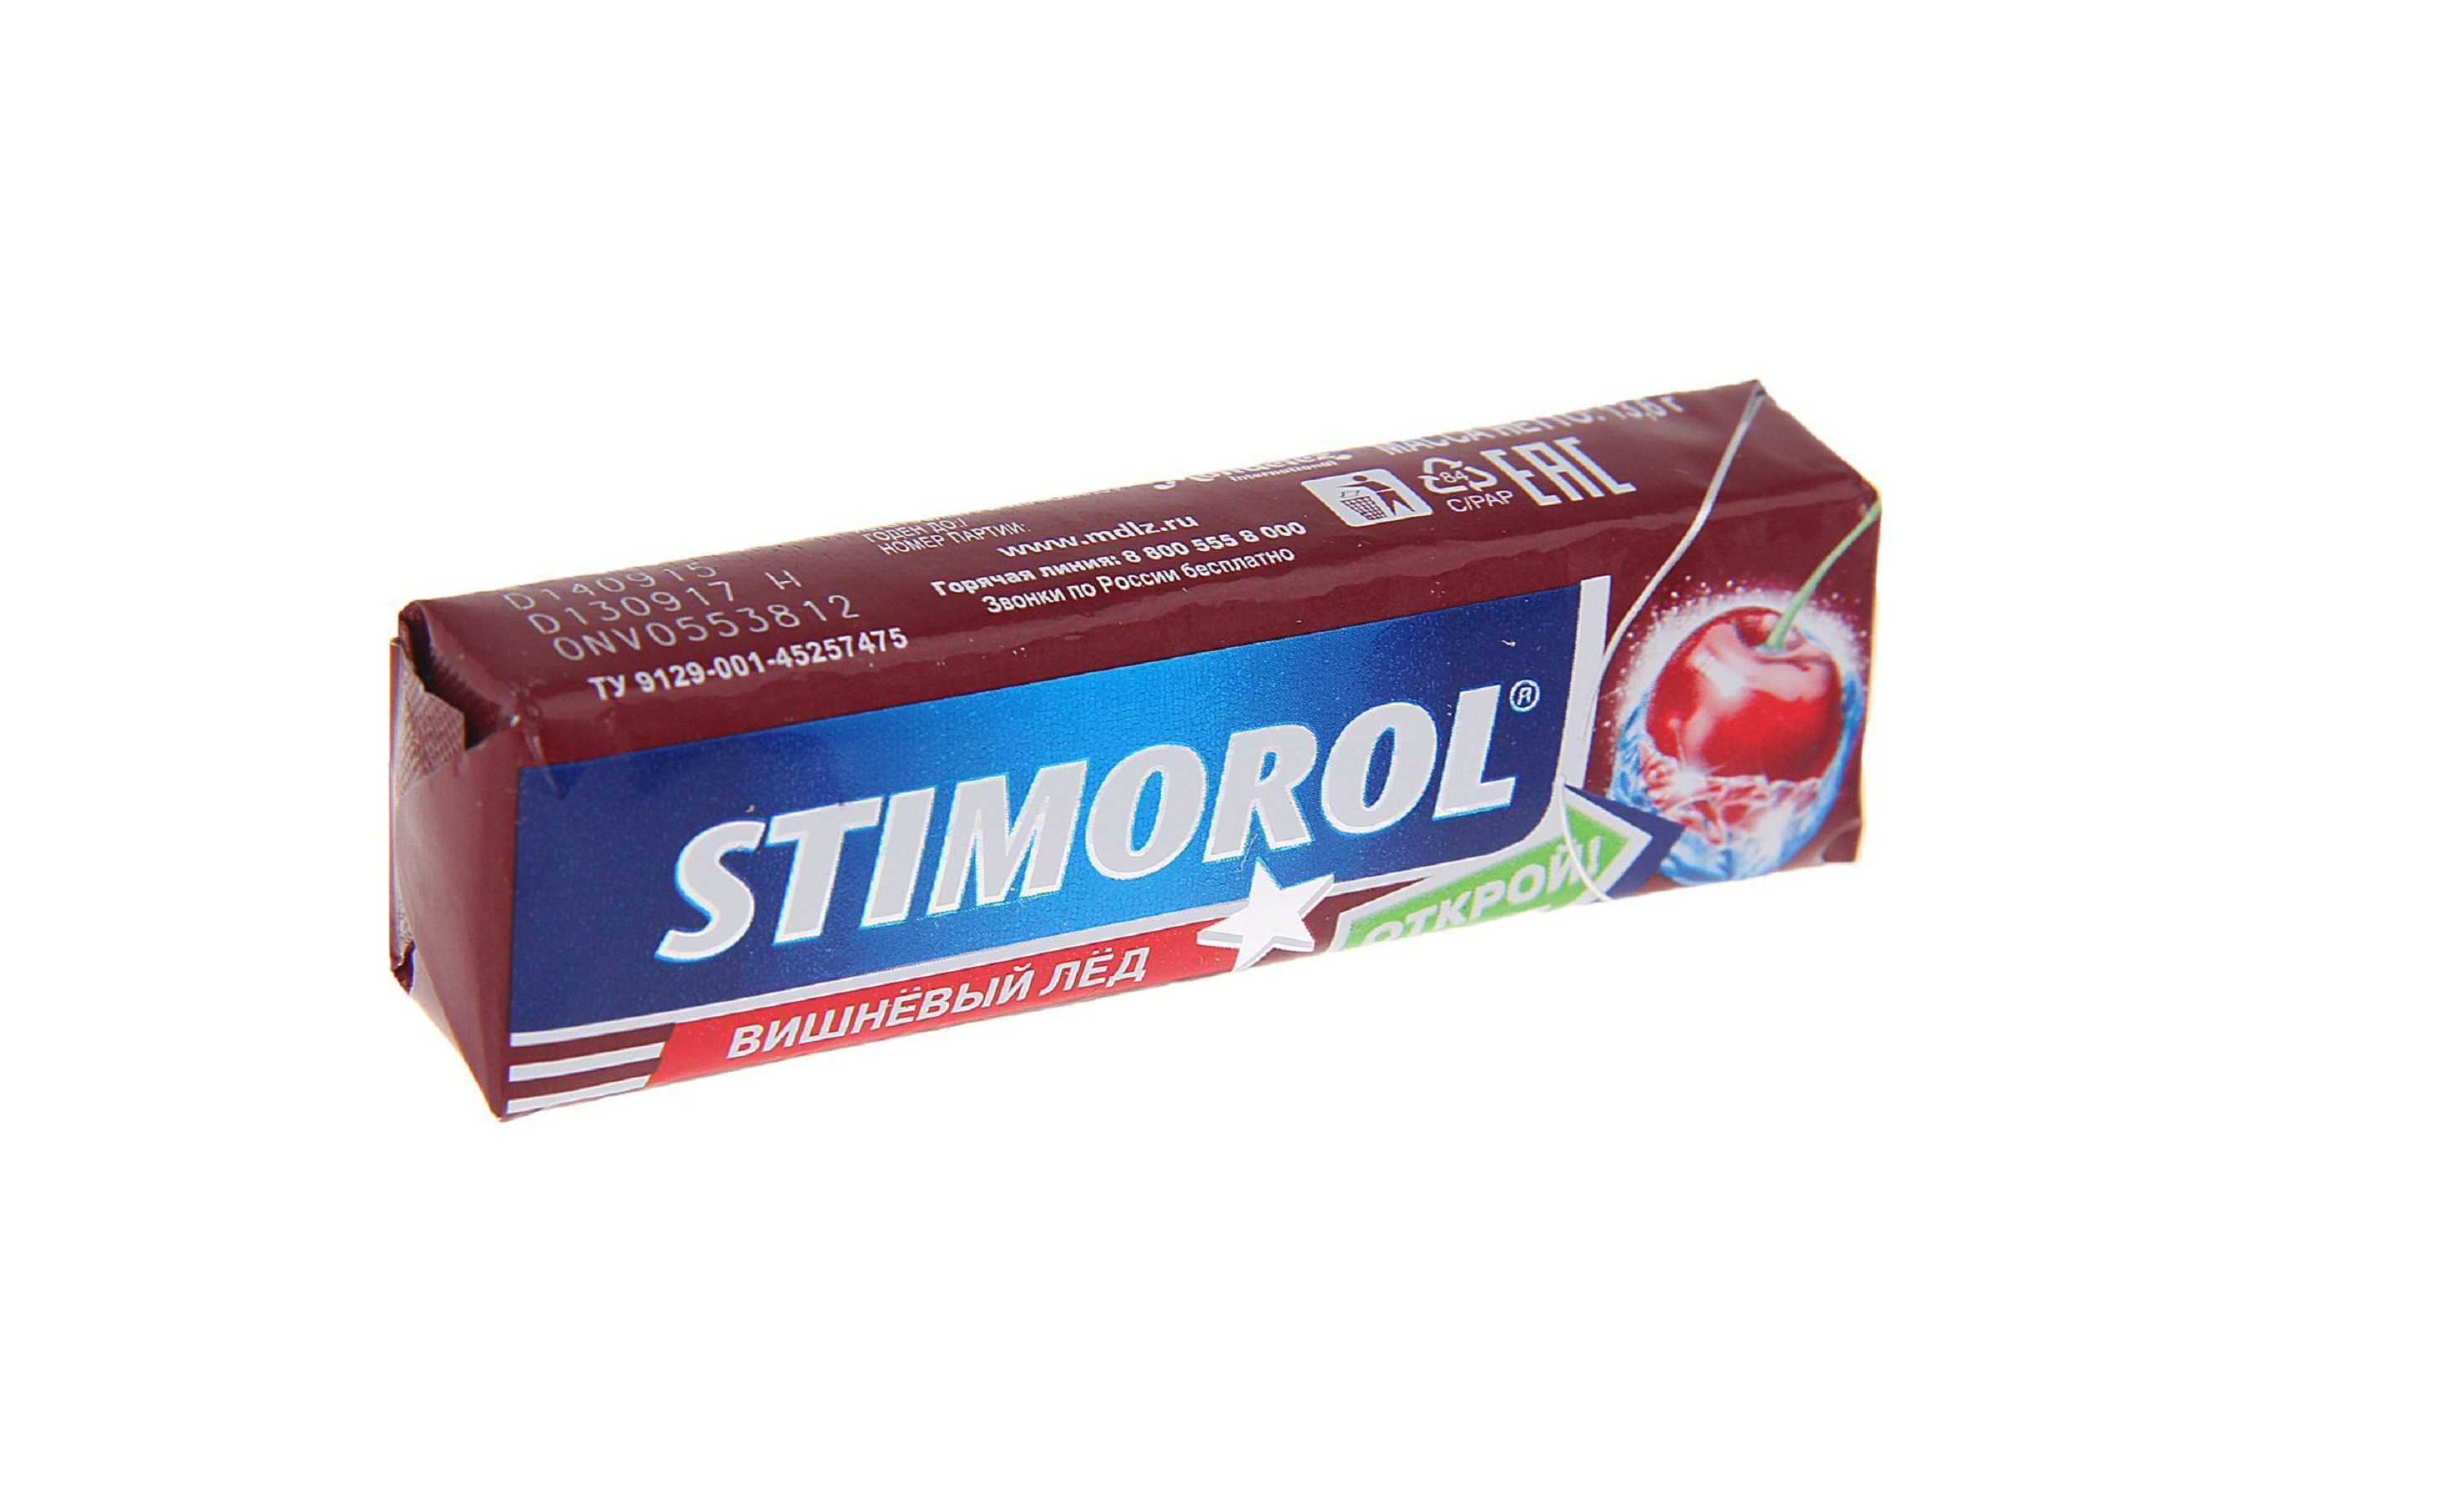 Stimorol Wallpaper